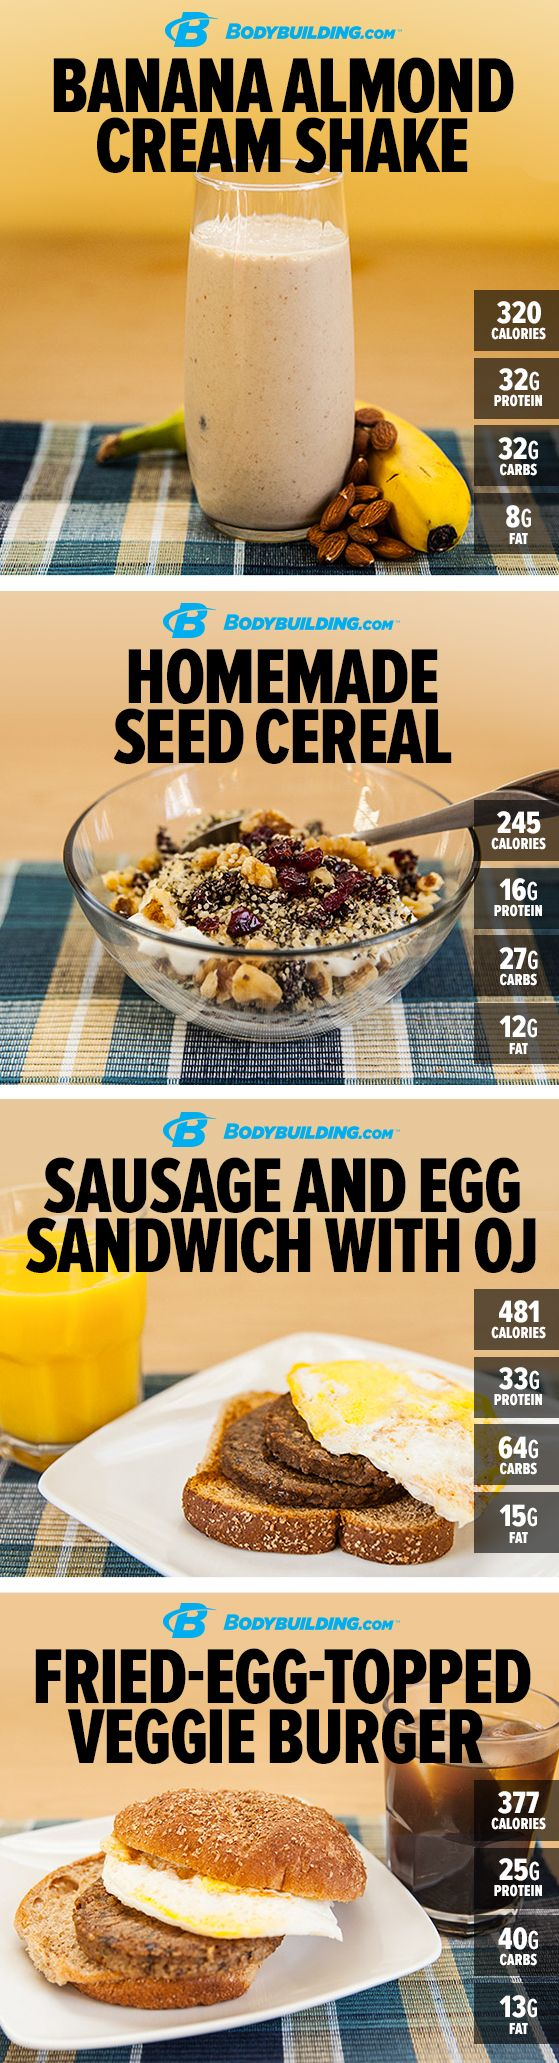 7 Protein-Rich Vegetarian Breakfasts. Here's your guide, in the form of a week's worth of well-rounded vegetarian breakfasts! #Recipes